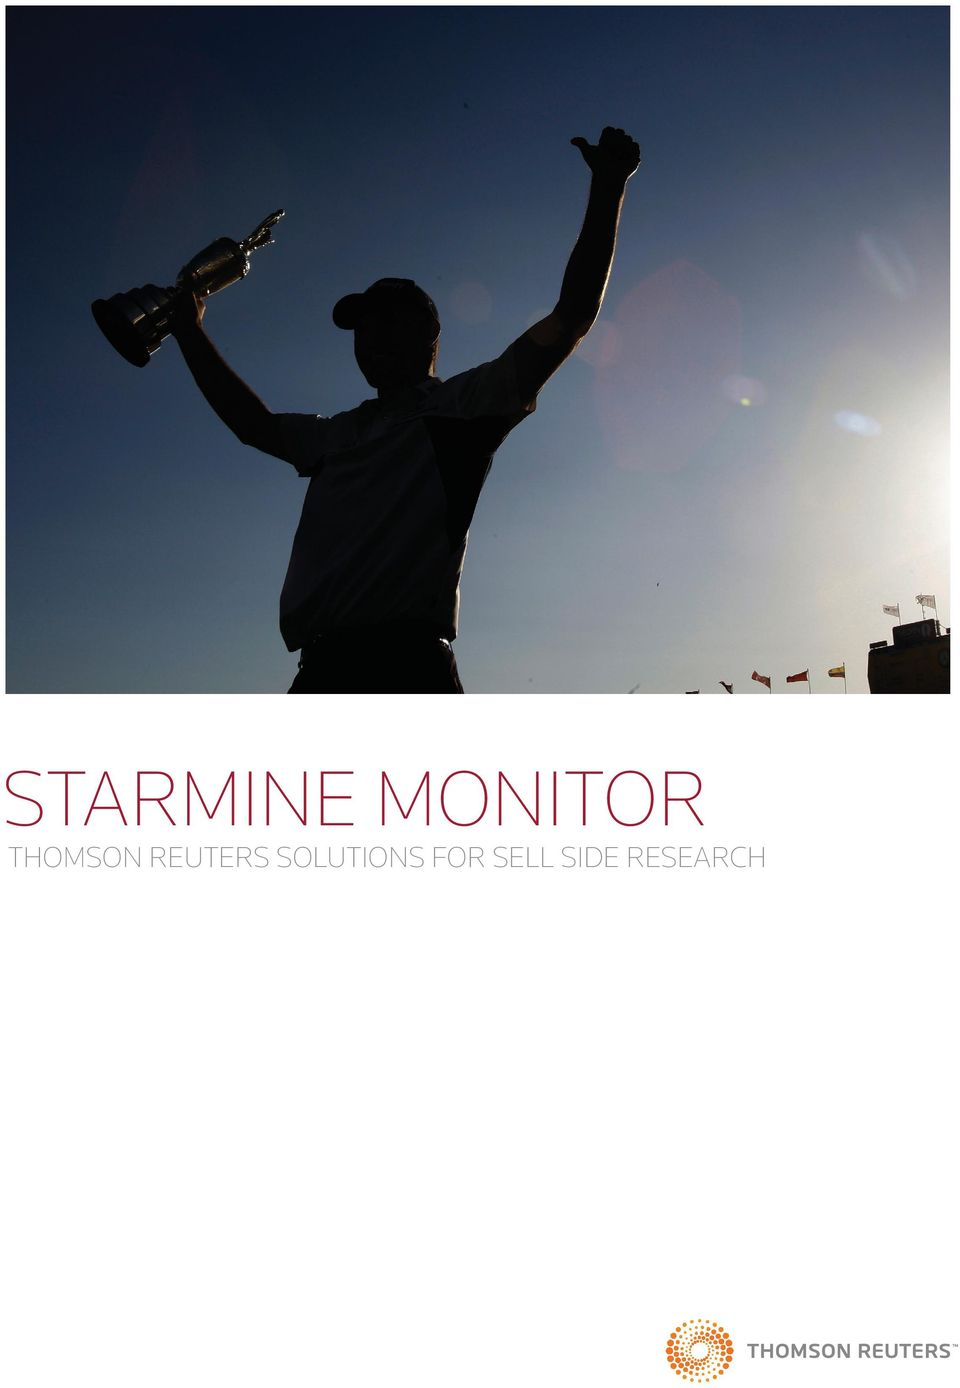 STARMINE MONITOR THOMSON REUTERS SOLUTIONS FOR SELL SIDE